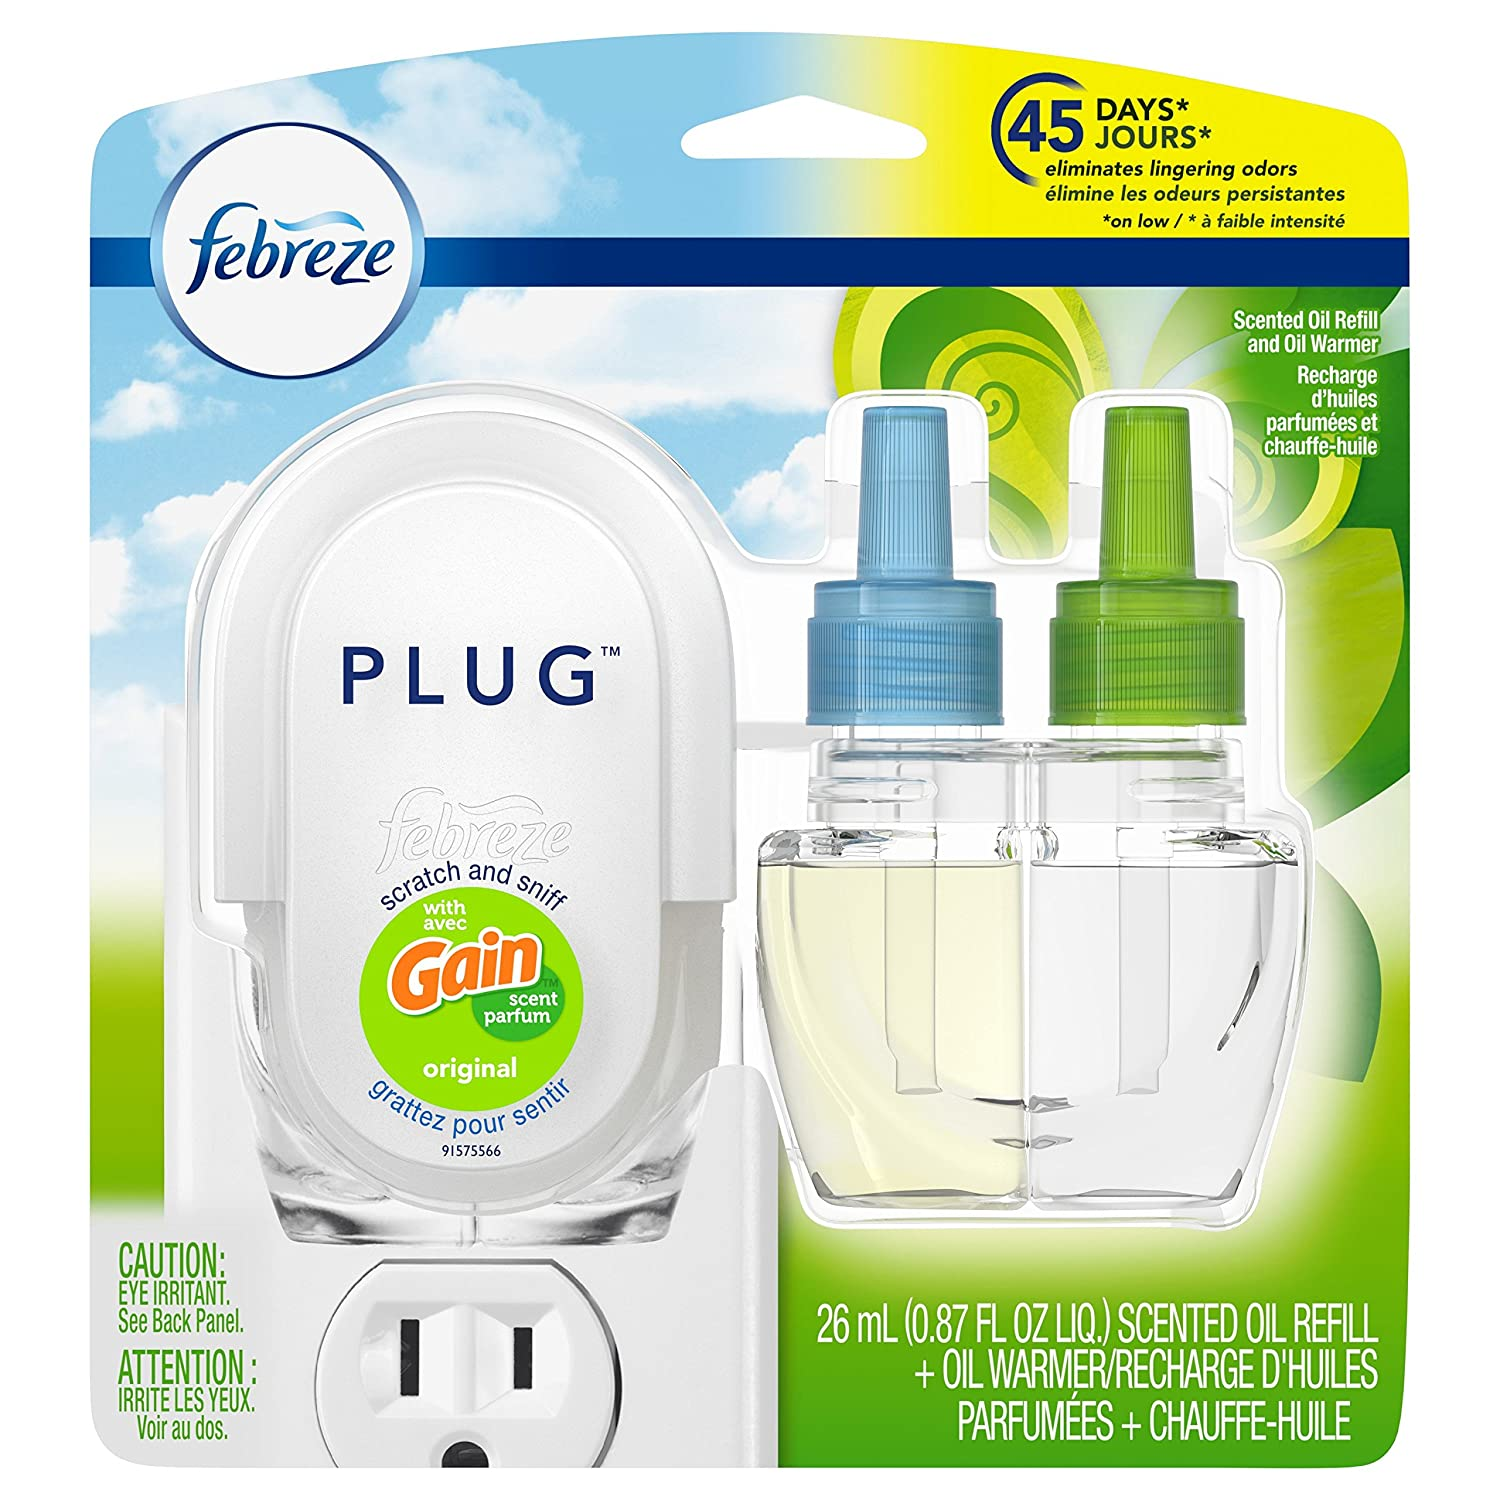 Febreze PLUG Air Freshener, Scented Oil Refill and Oil Warmer, Gain Original Scent, 1 count, Packaging May Vary Procter and Gamble